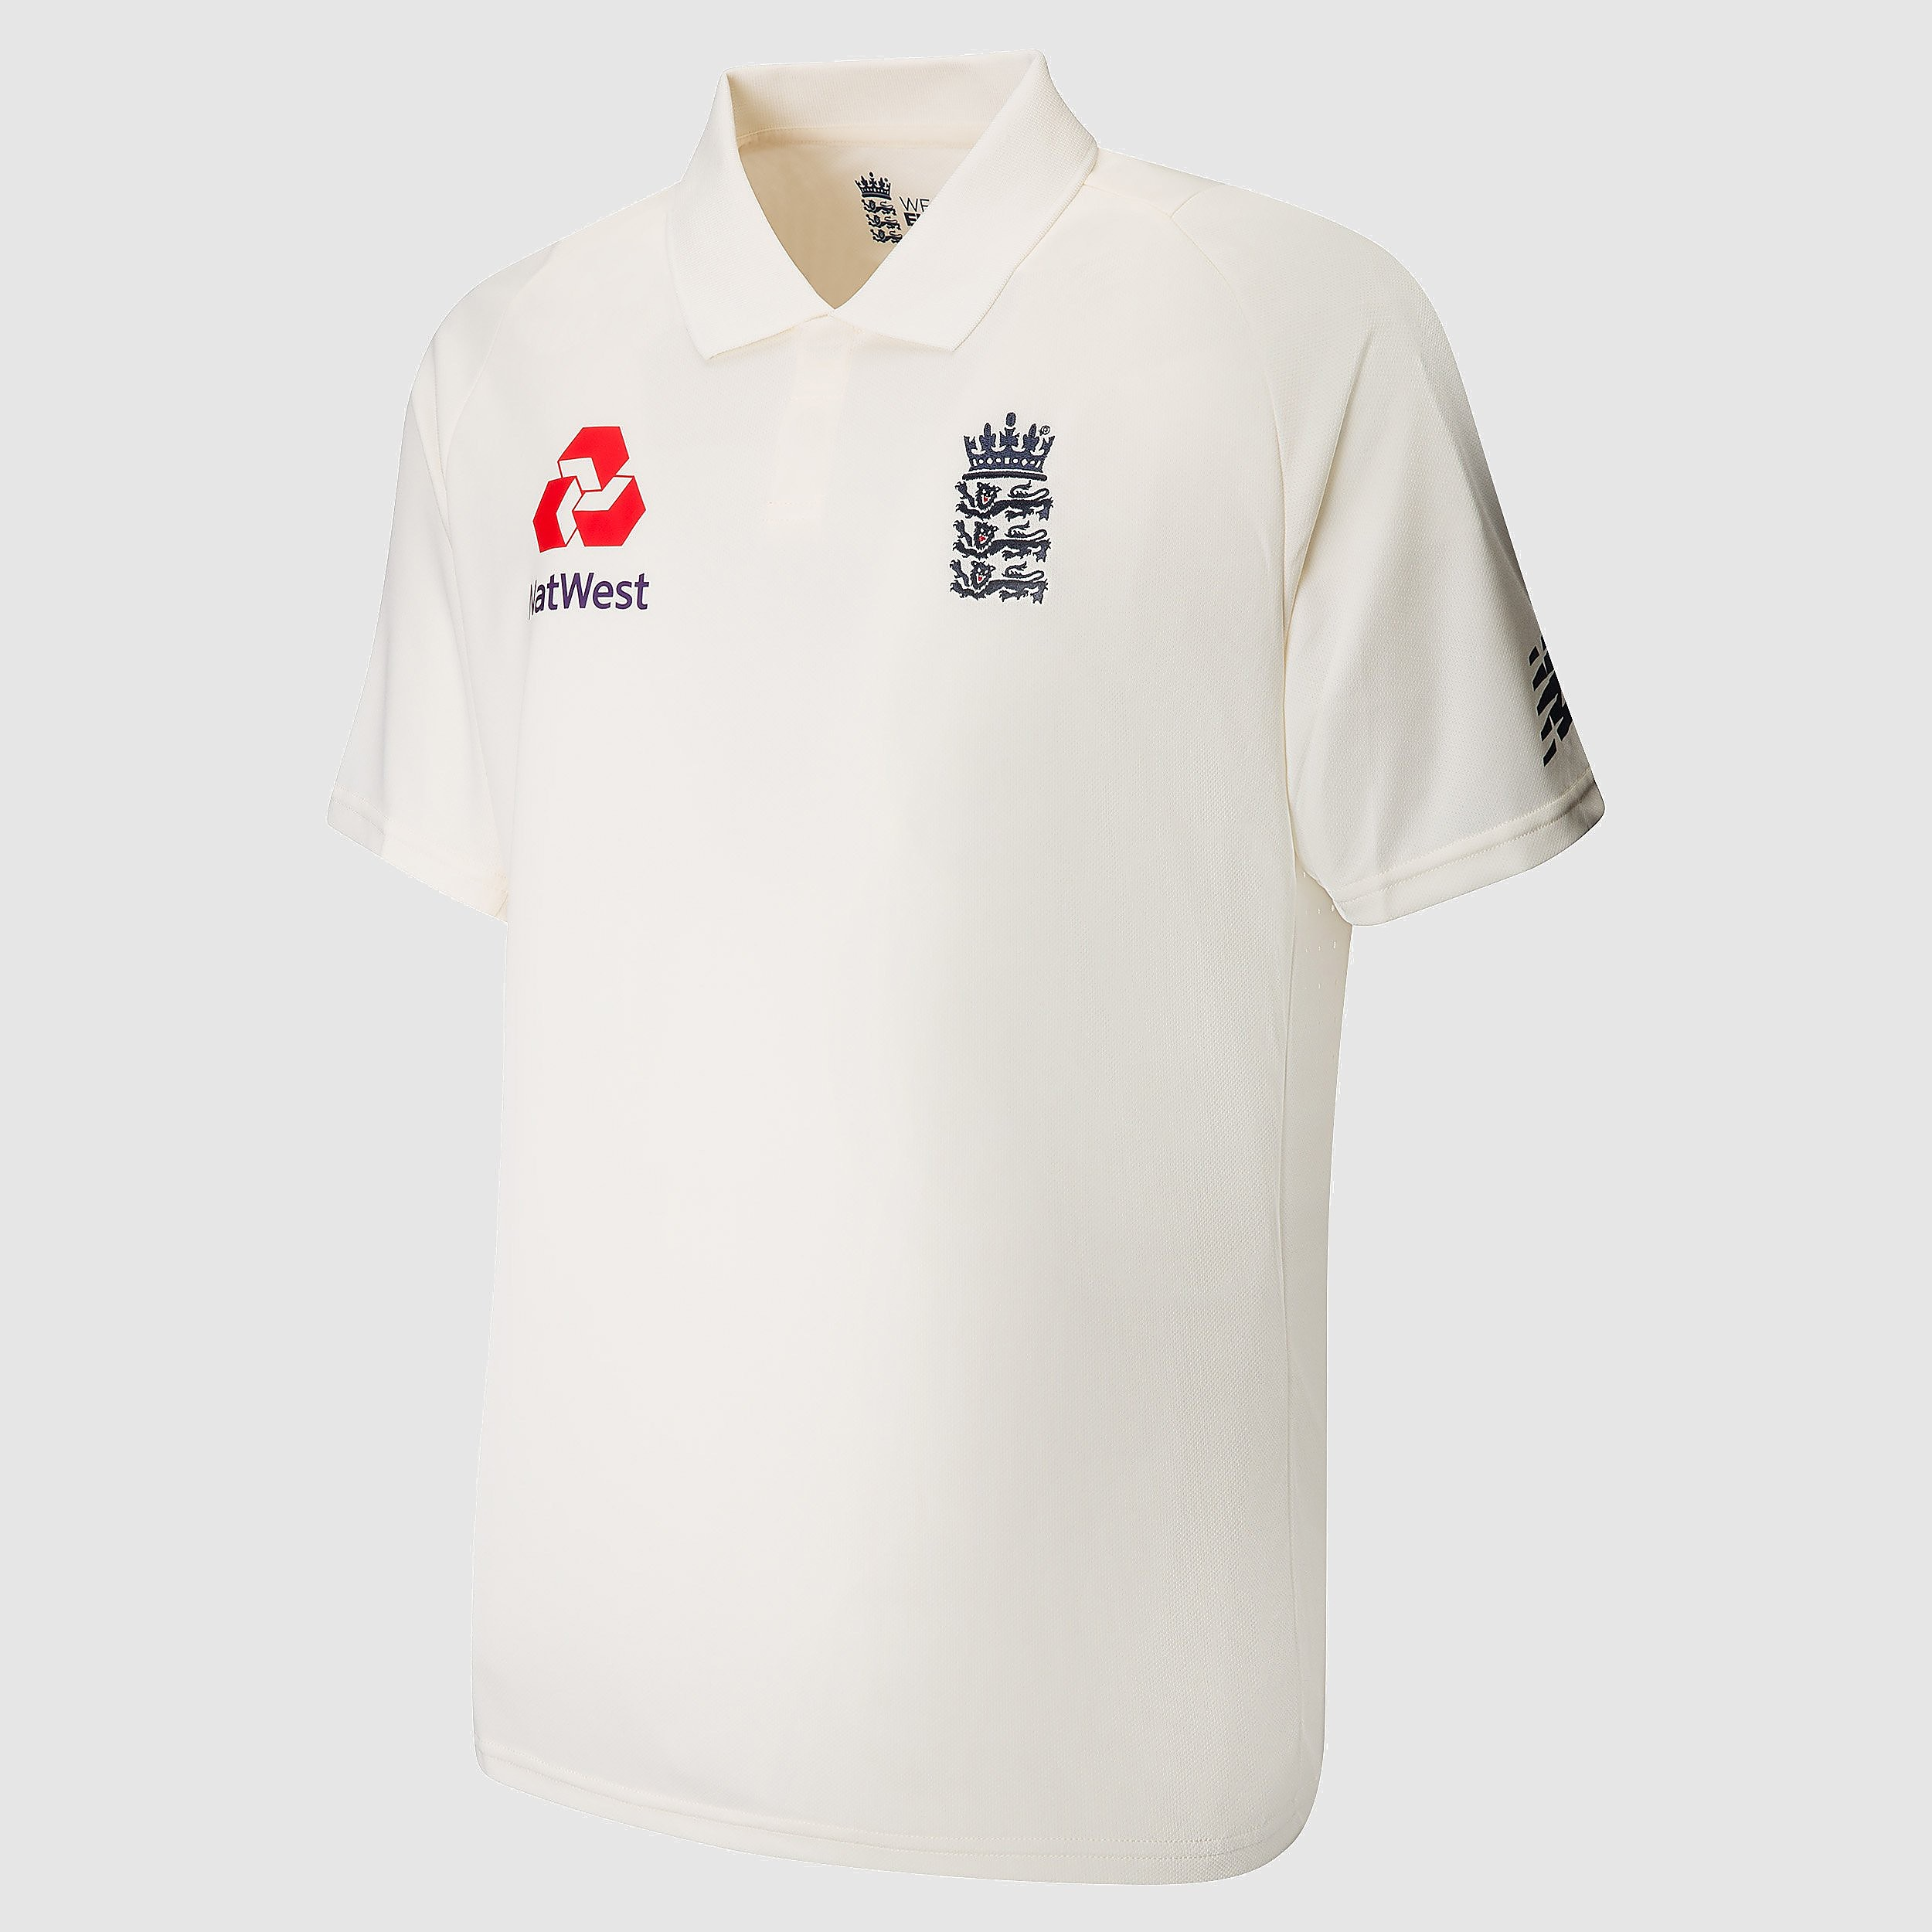 New Balance ECB Test Men's Replica Shirt